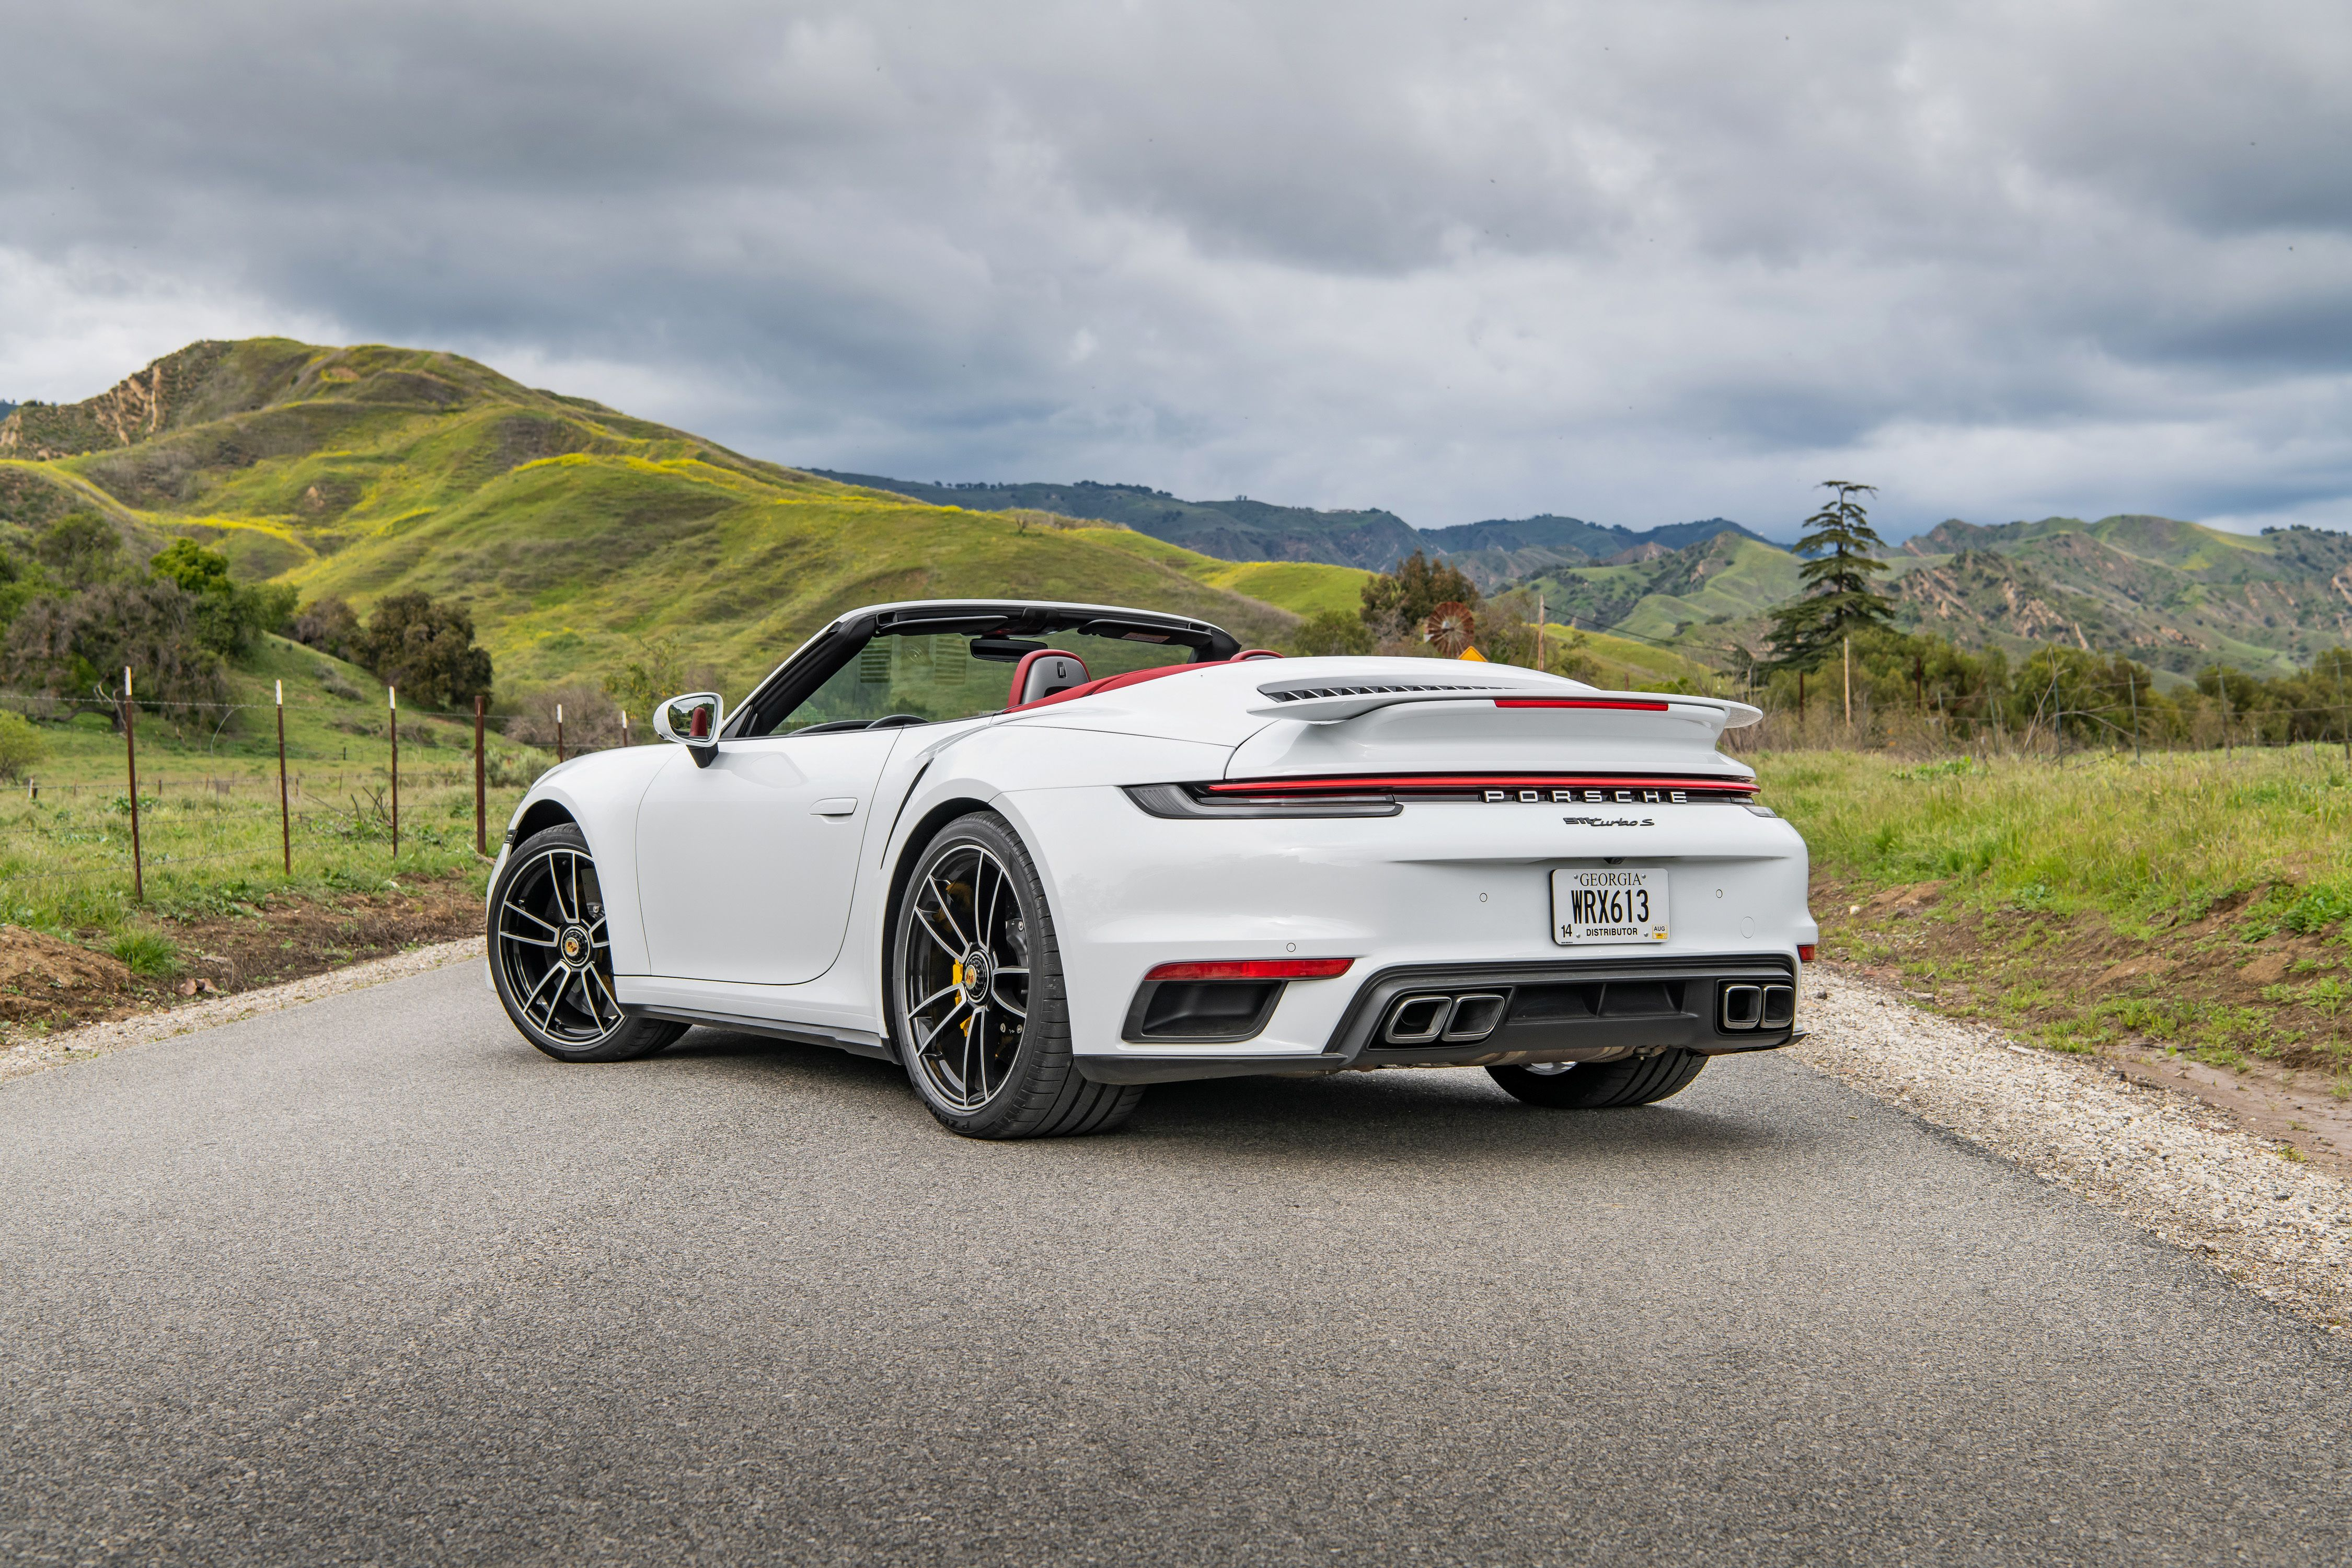 2021 Porsche 911 Turbo S Cabriolet Fast Headroom